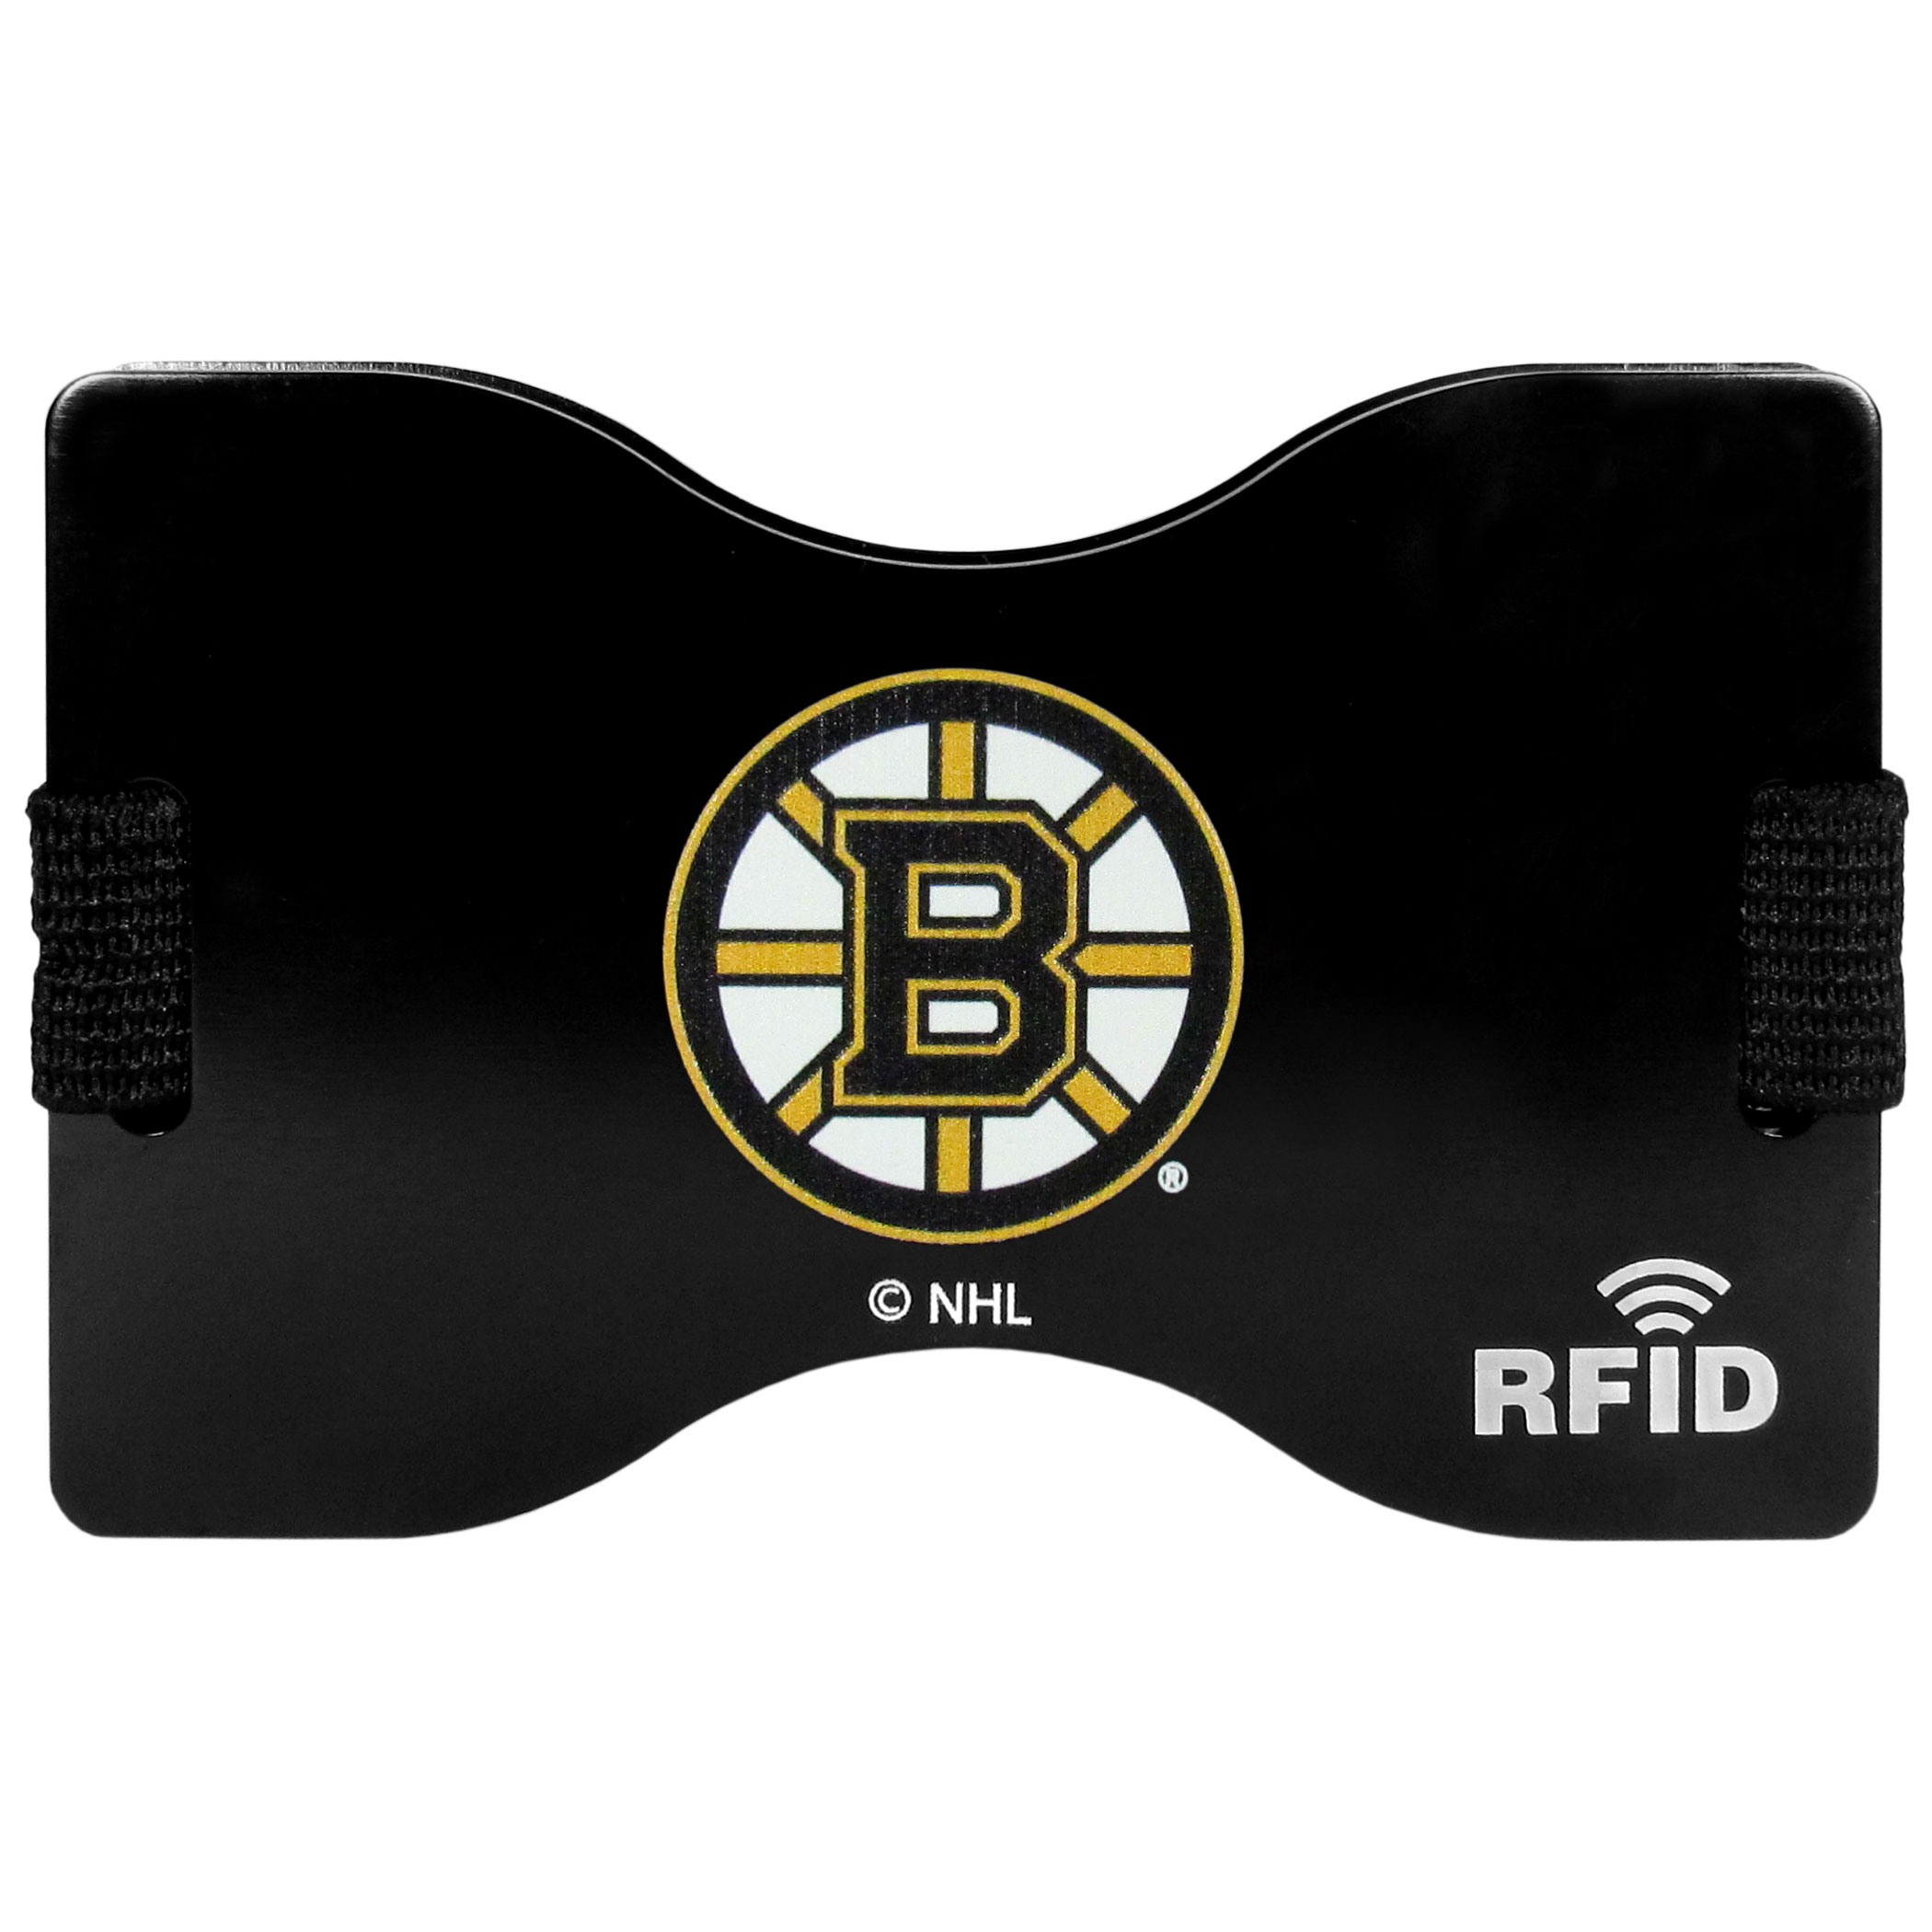 Boston Bruins® RFID Wallet - Our RFID blocking wallet and moneyclip is designed to help protect you from falling victim to a particular brand of electronic pickpocketing call RFID skimming. RFID skimming allows a criminal to scan your cards with chips and read your personal information. This attractive Boston Bruins® wallet protects against this threat while also meeting all of your slim wallet needs. Store your cards in between the expandable RFID plates and store you cash in the handy outer money clip.